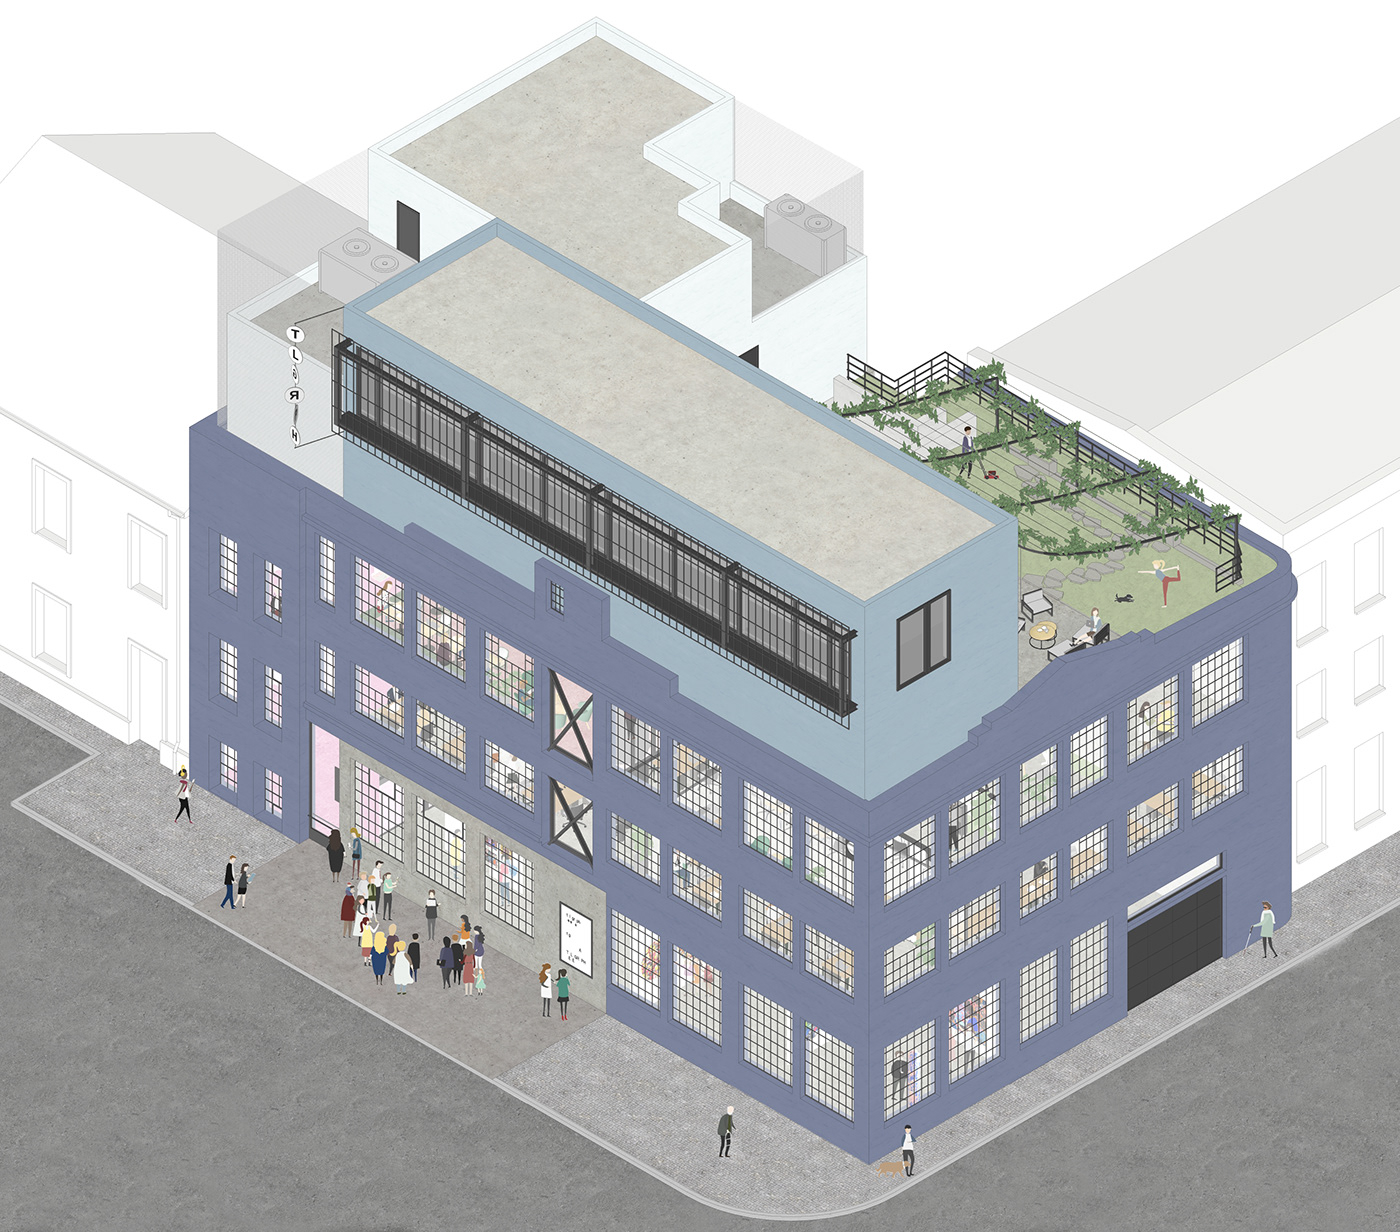 architecture axonometric axonometry building coworking exploded gallery ILLUSTRATION  model Telegraph